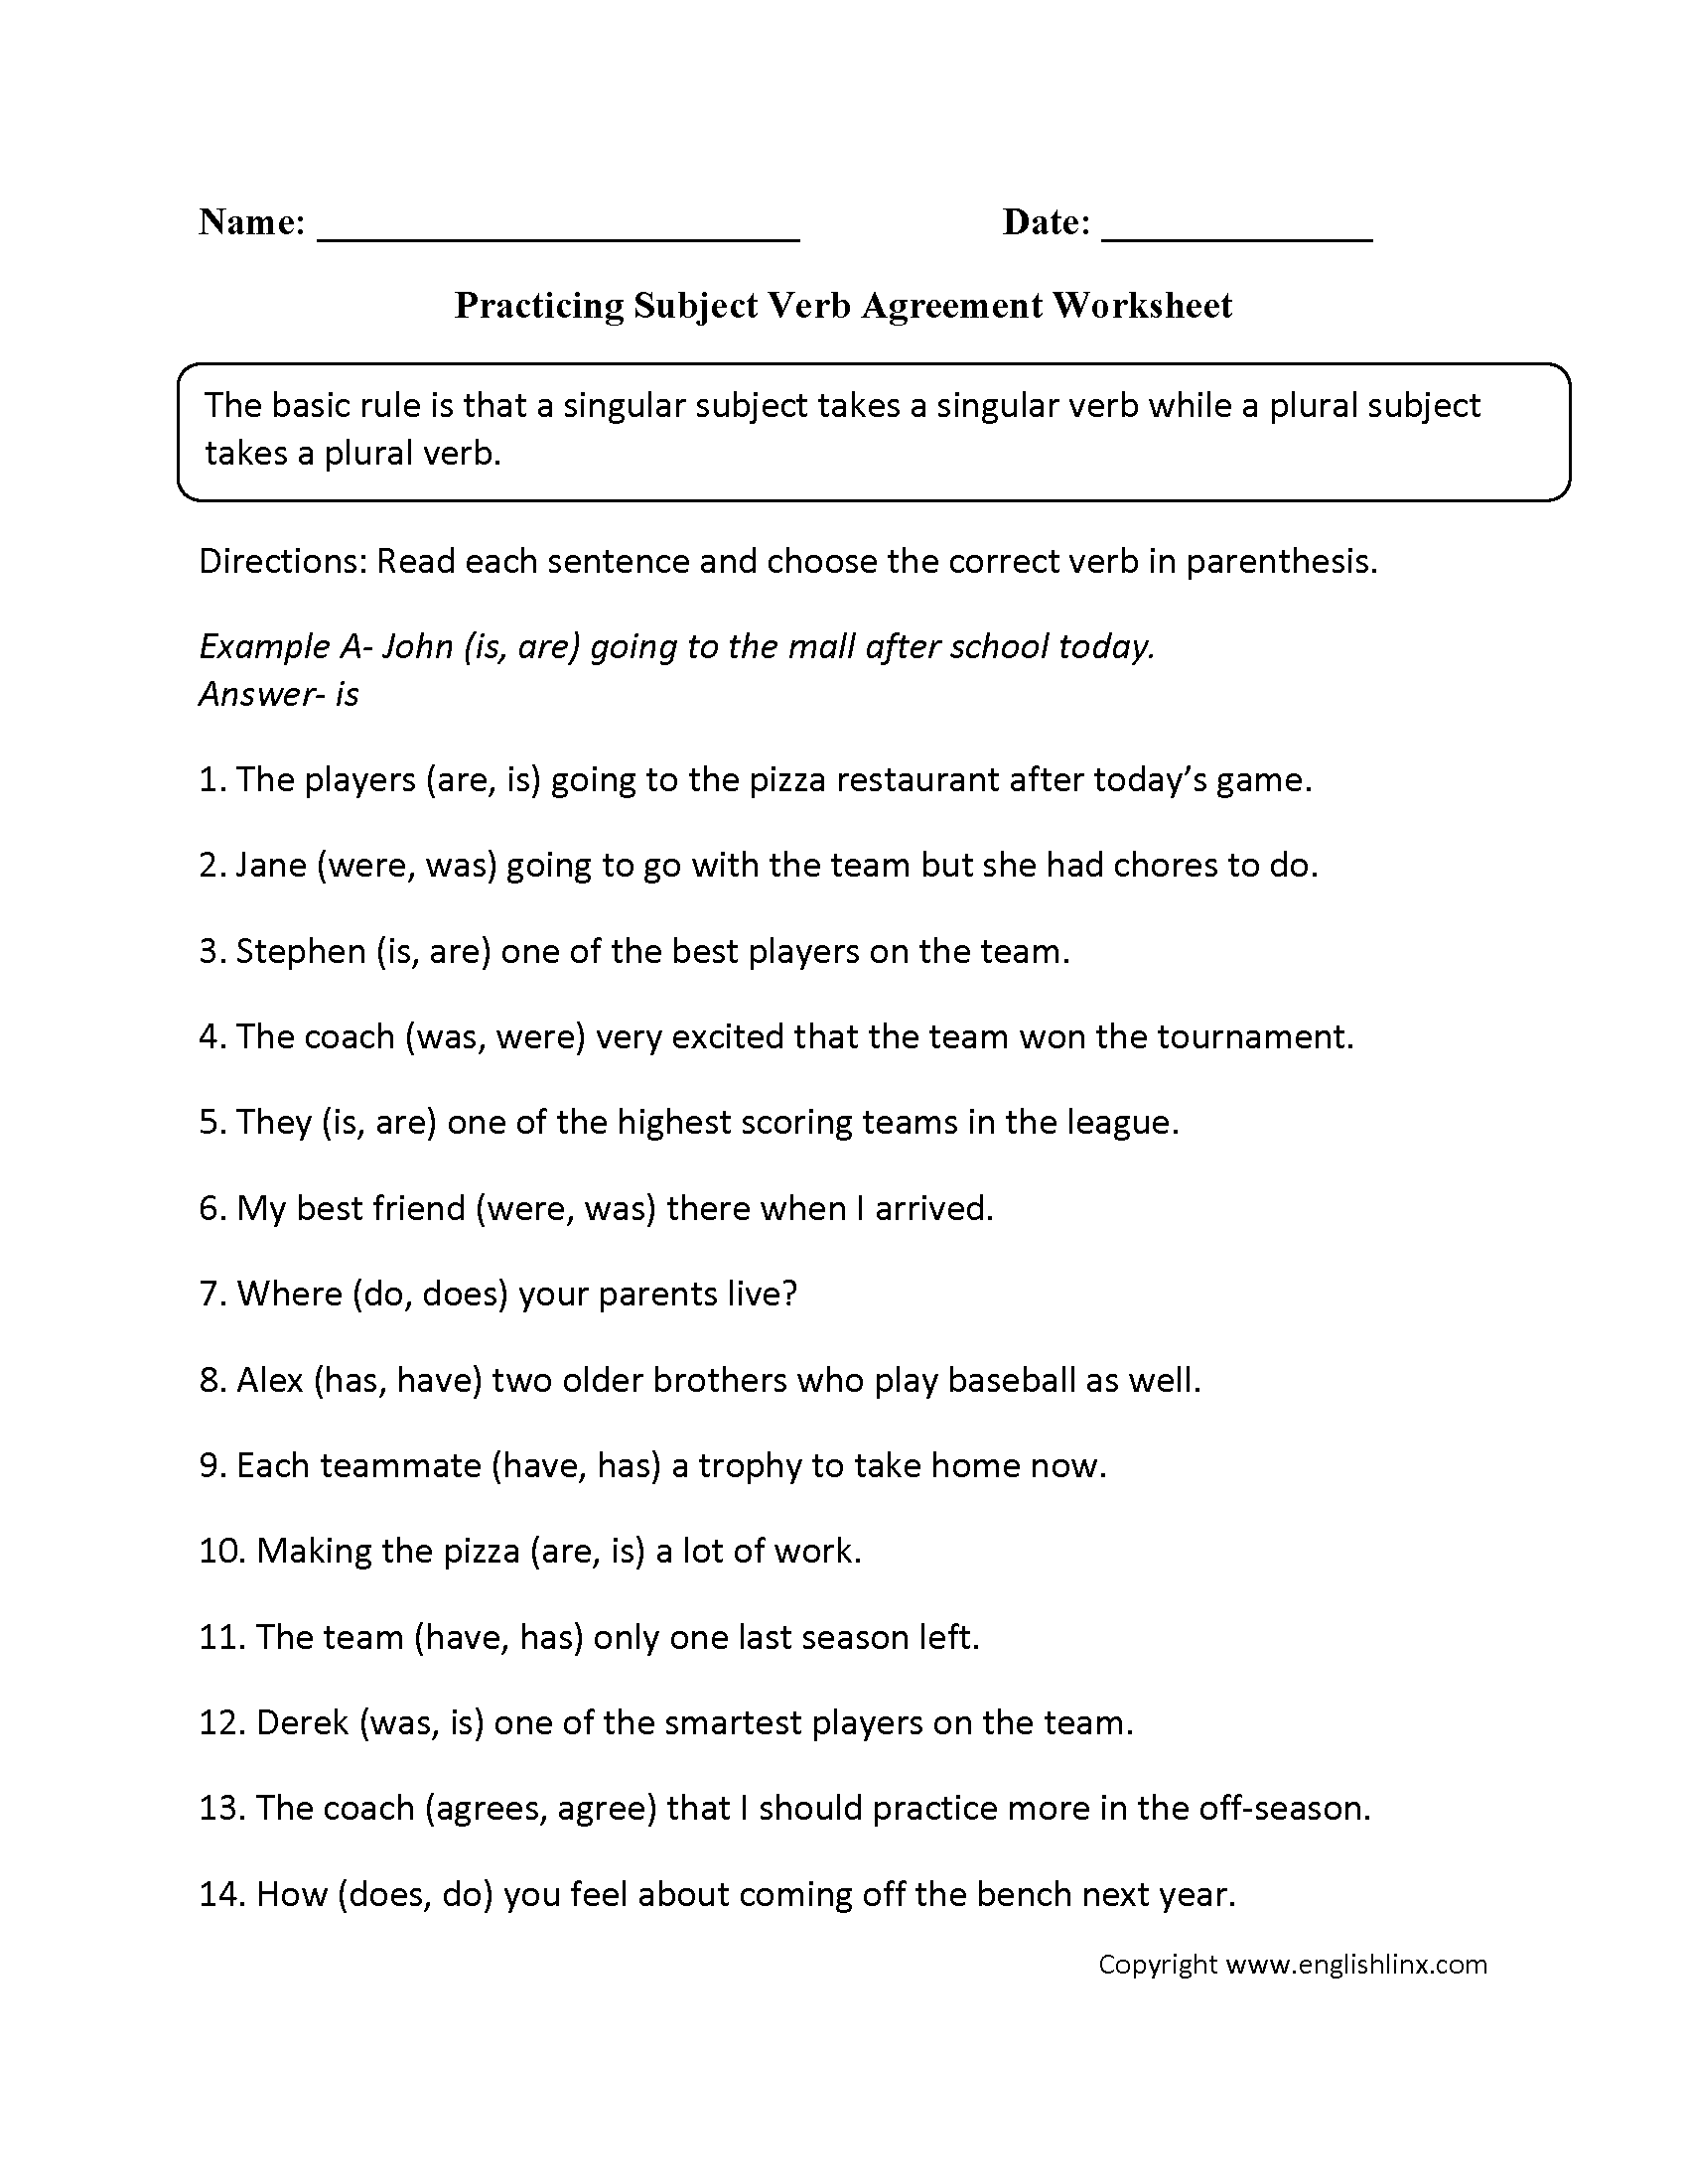 worksheet Pronoun Practice Worksheets subject verb agreement worksheets englishlinx com board worksheets